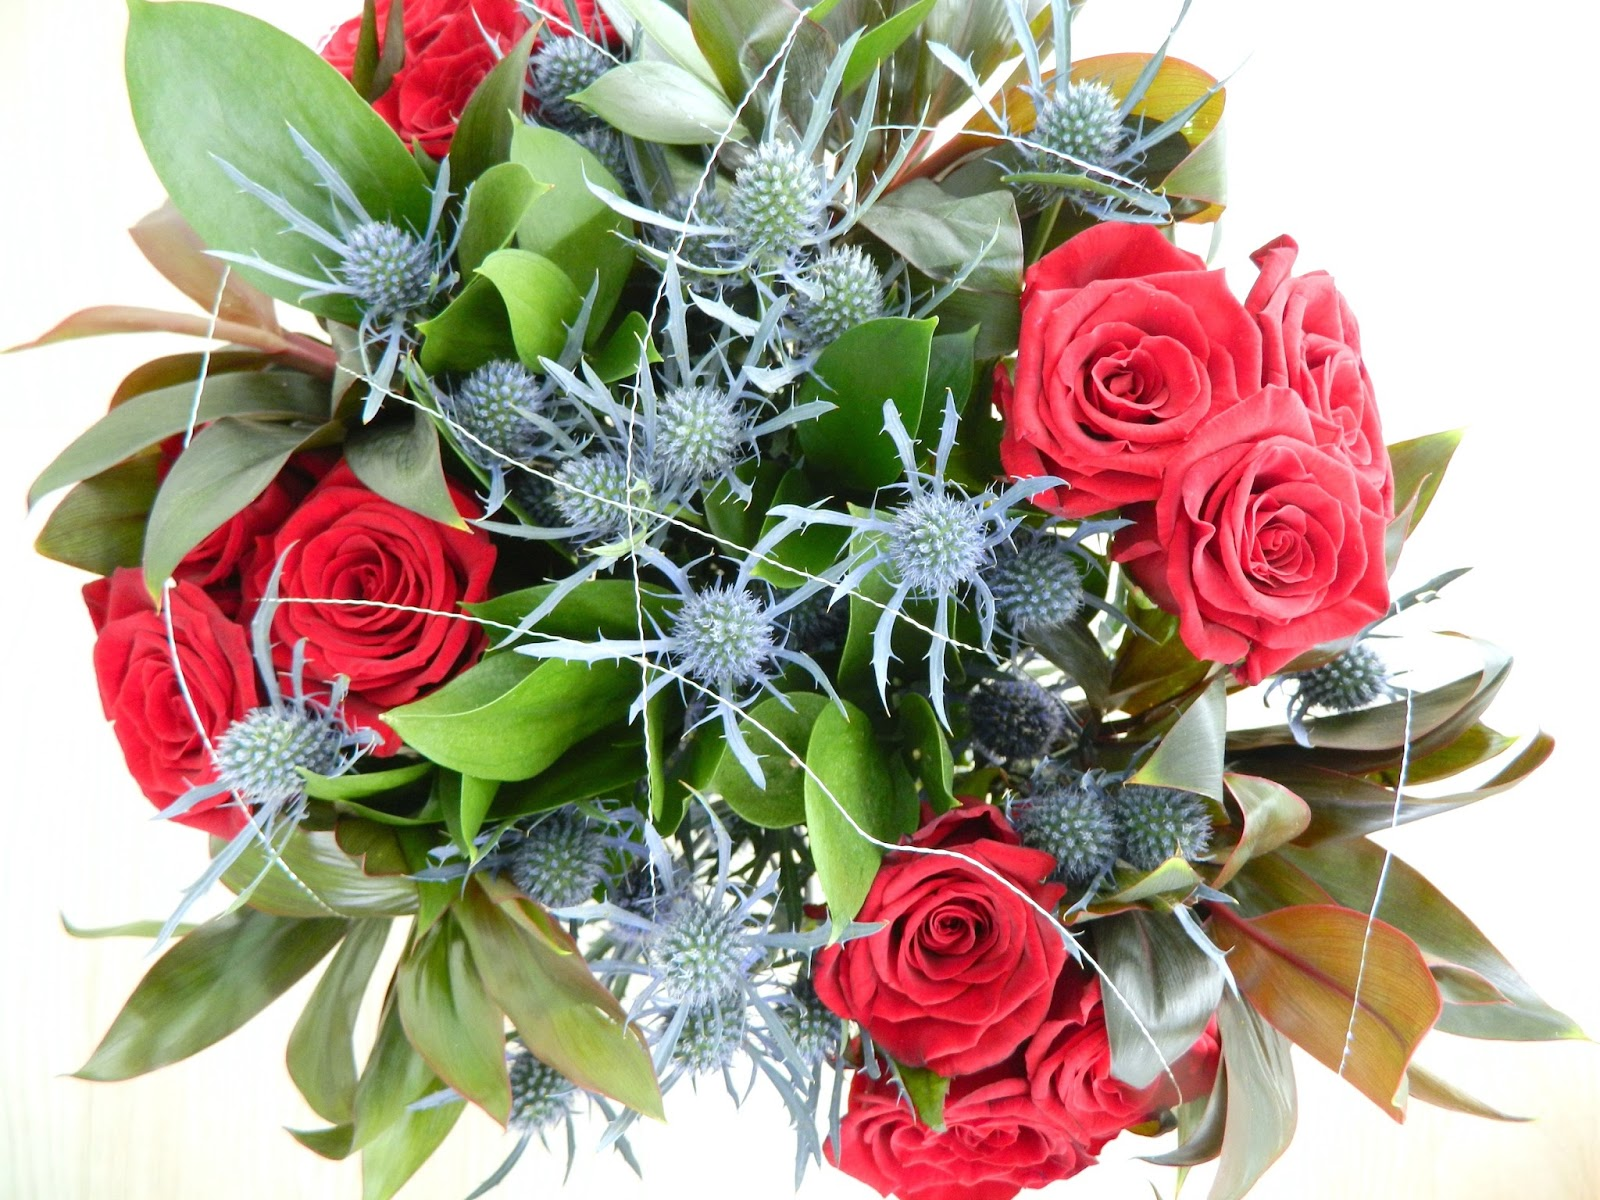 The Grandeur Bouquet From Their Luxury Range Features Stunning Avalanche  Red Roses, Complimented With Foliage Encased With Golden Orbits.